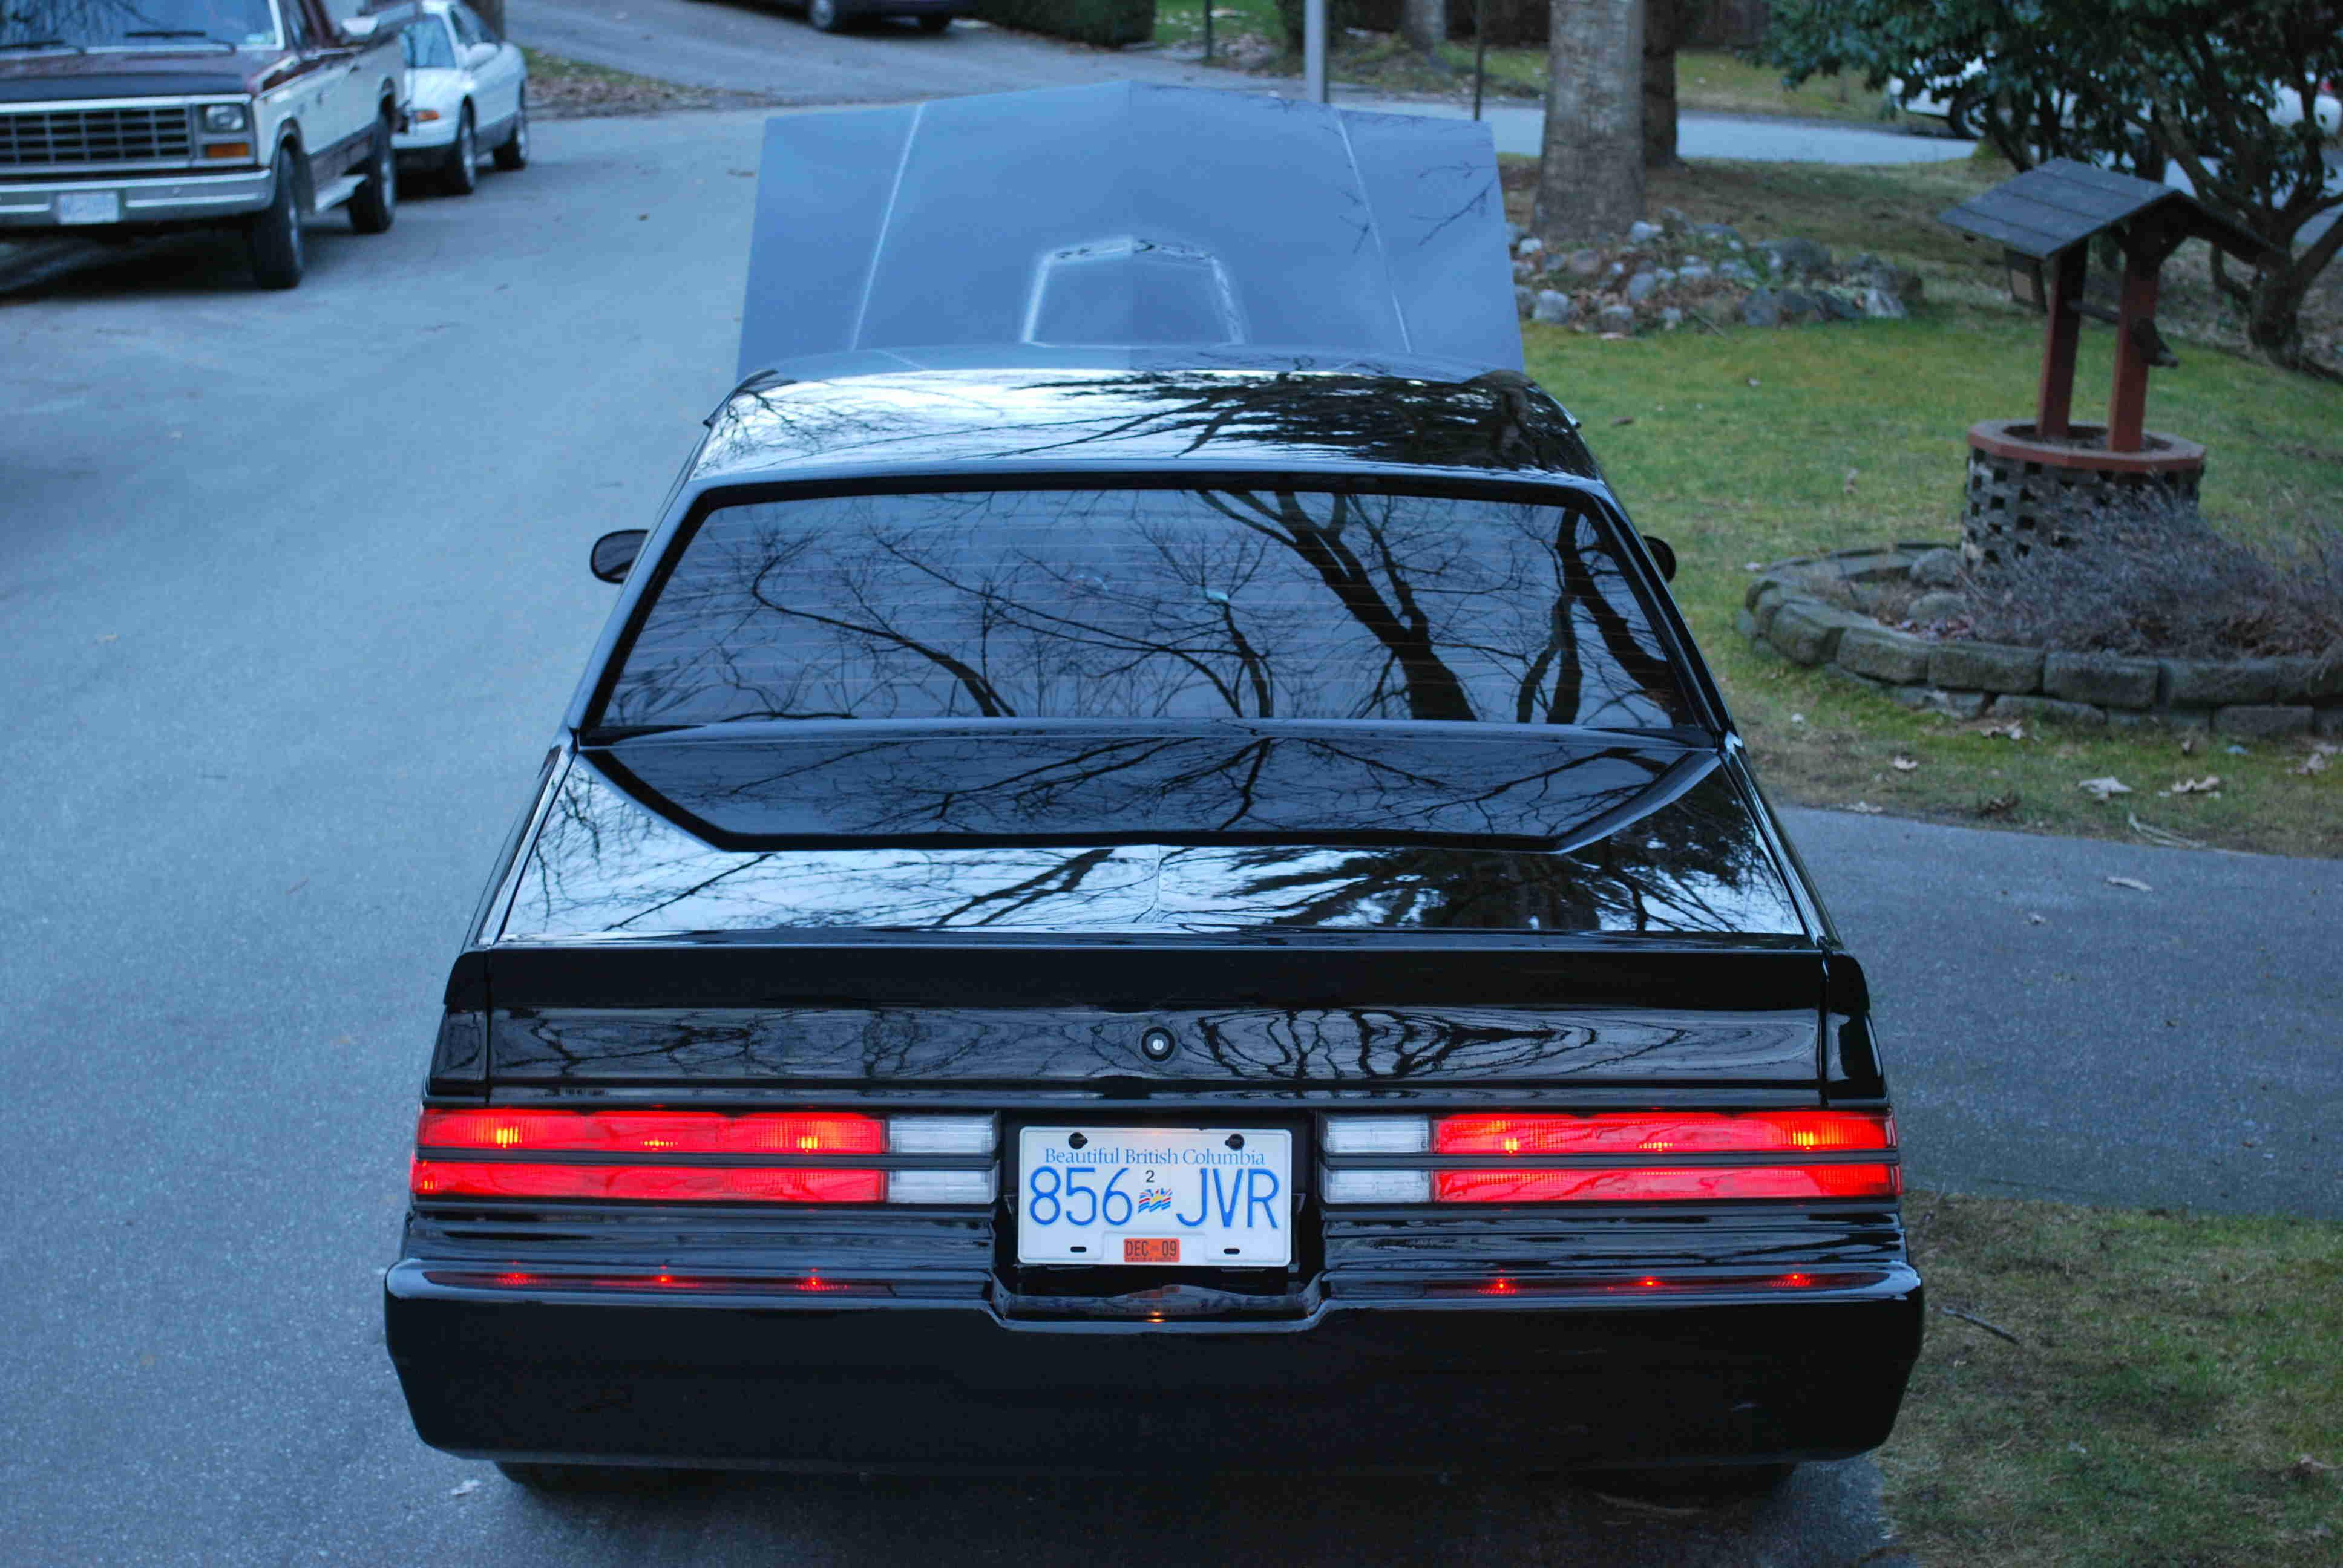 newfiegnx's 1985 Buick Regal